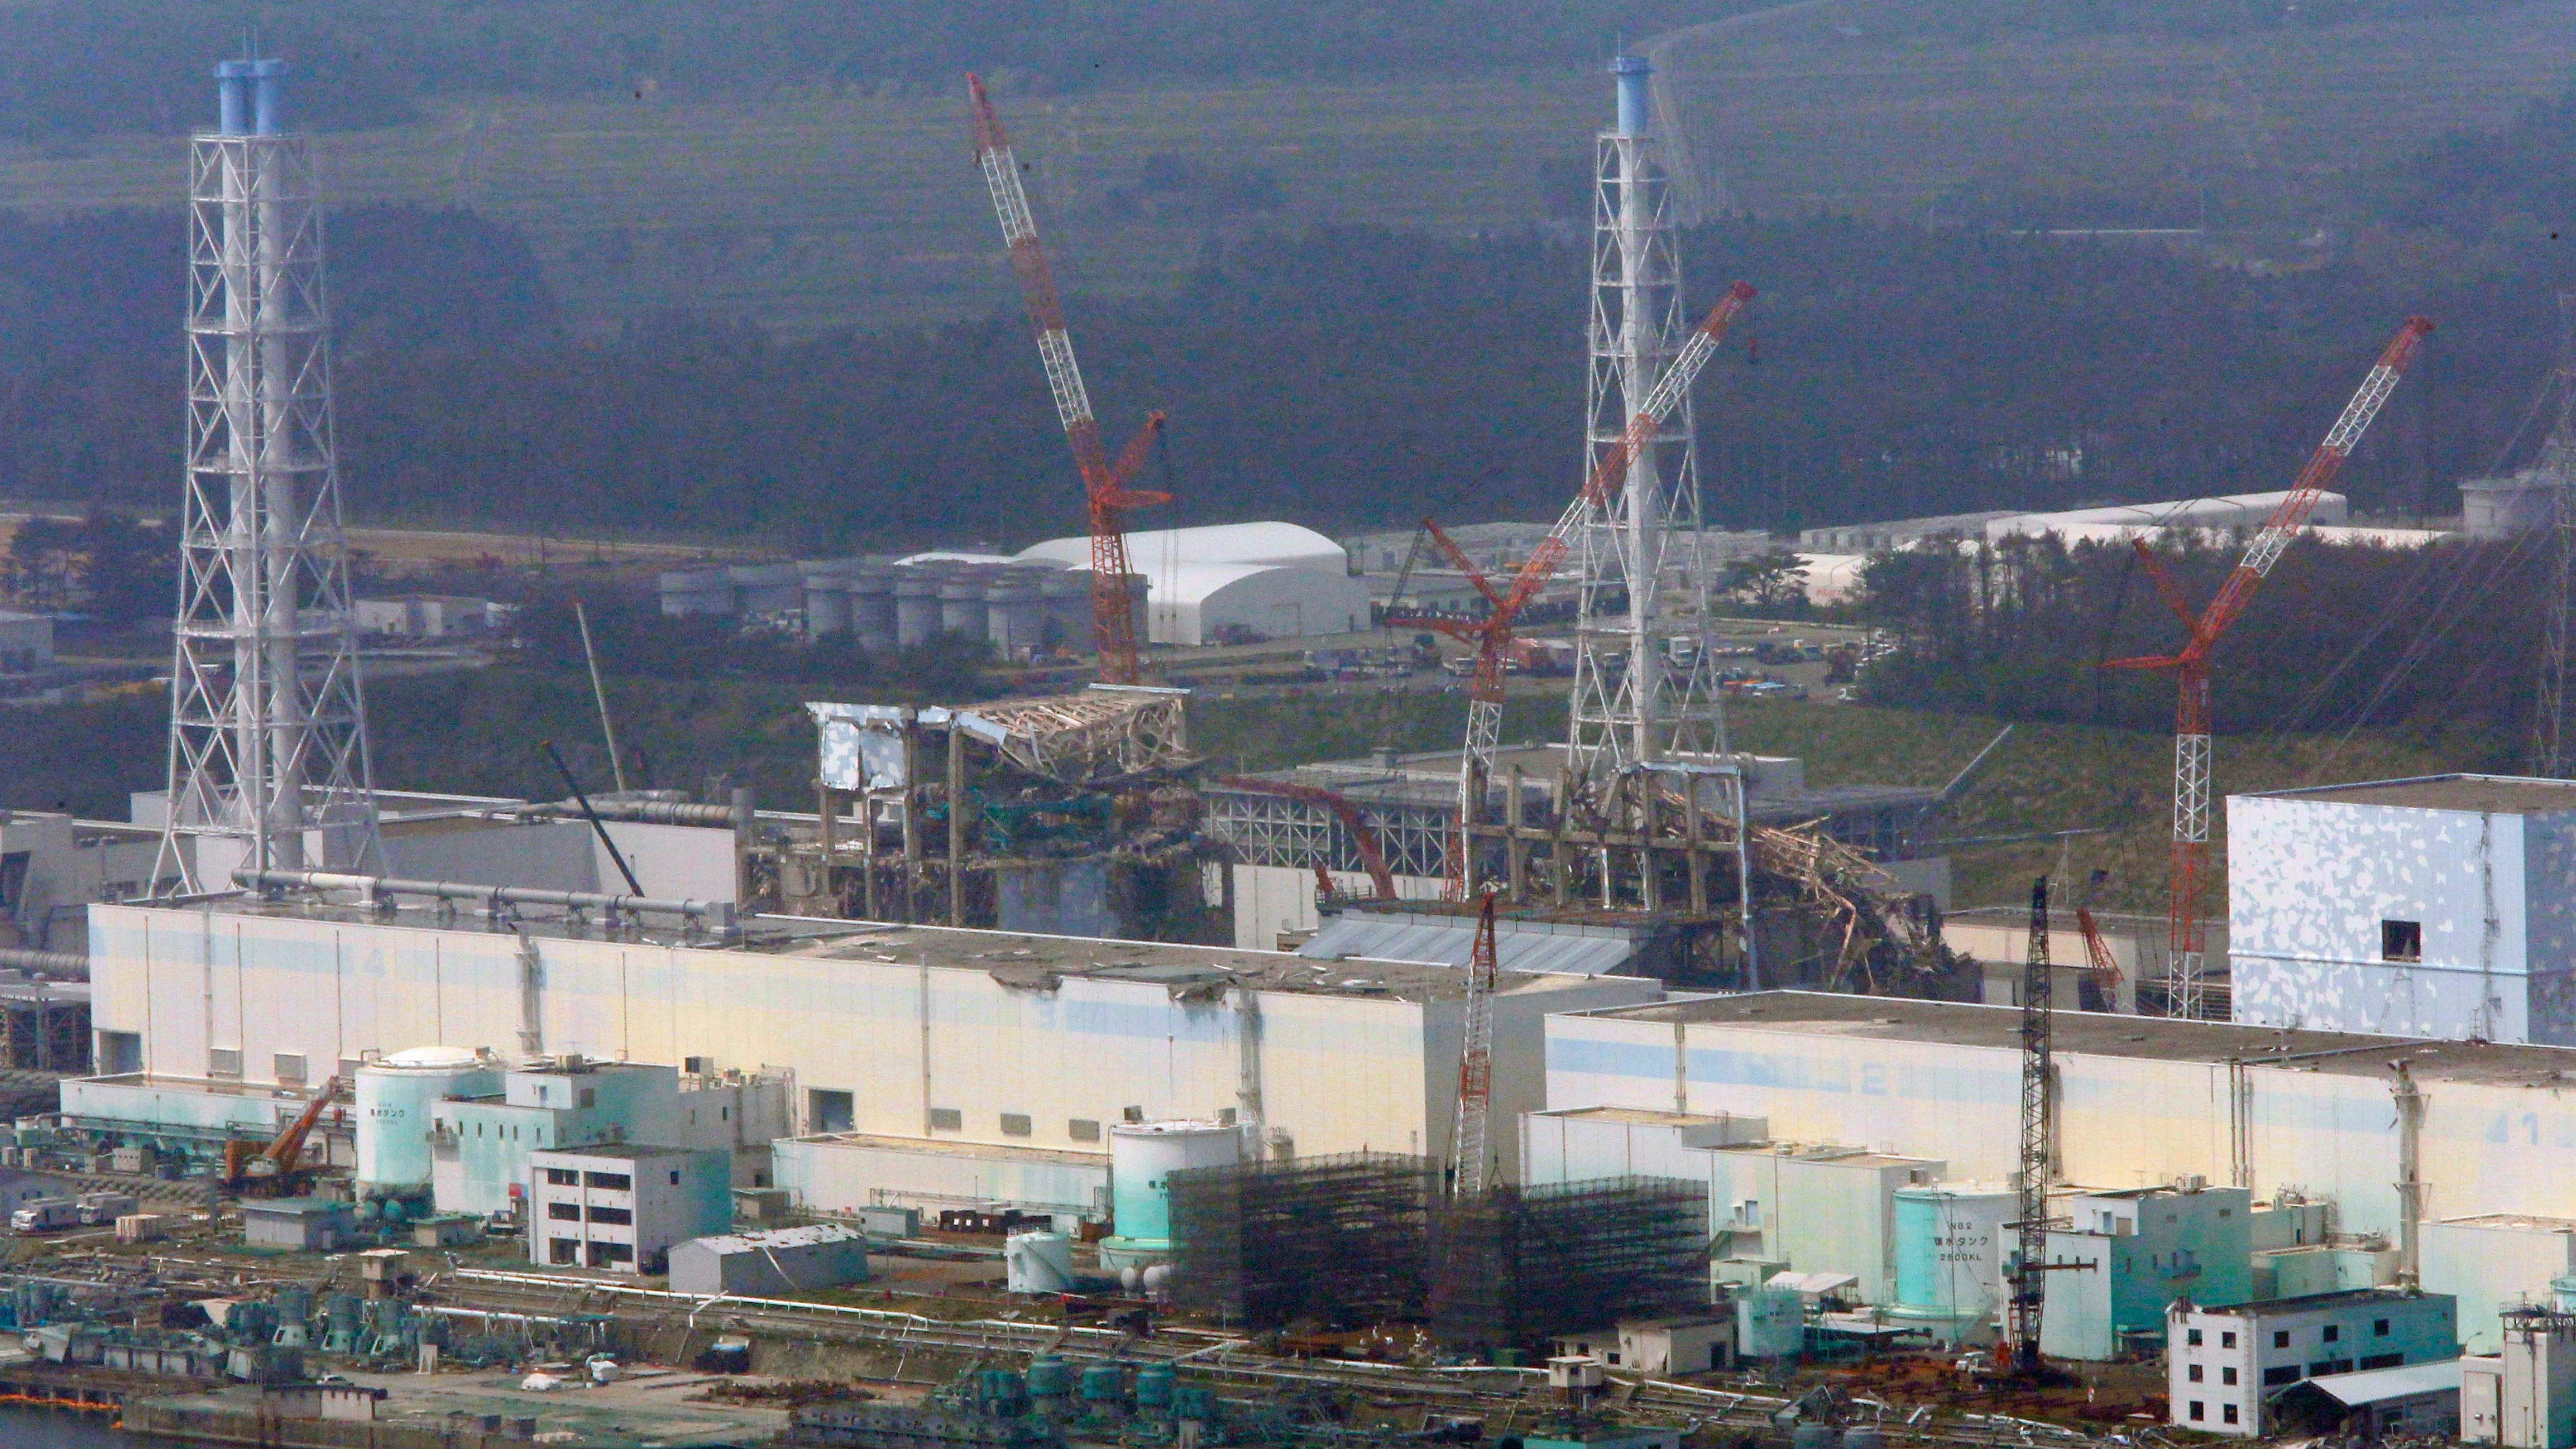 A Robot Captured Photos Of What Might Be Melted Nuclear Fuel Inside Fukushima's Reactor No. 3